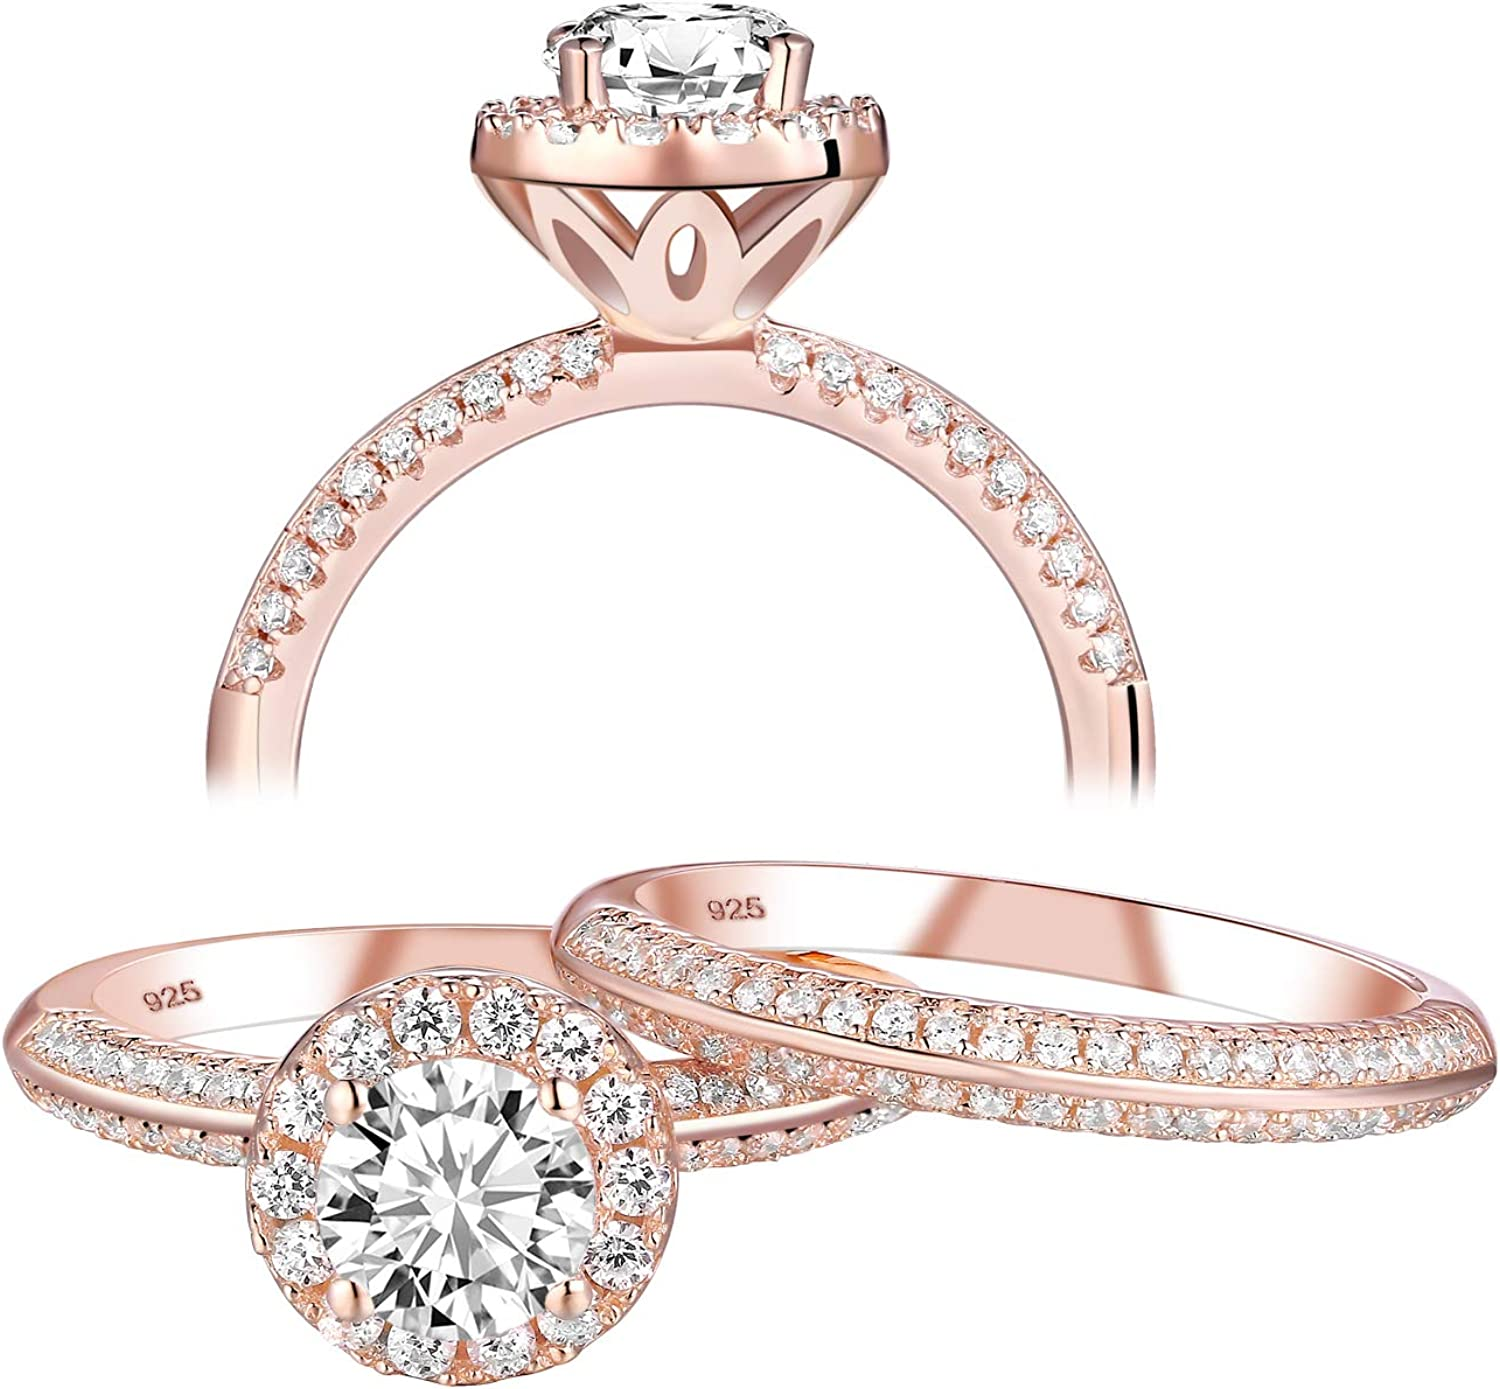 Newshe Rose Challenge the lowest price of Japan Gold Engagement Choice Wedding Ring Women 925 Sets Ster for